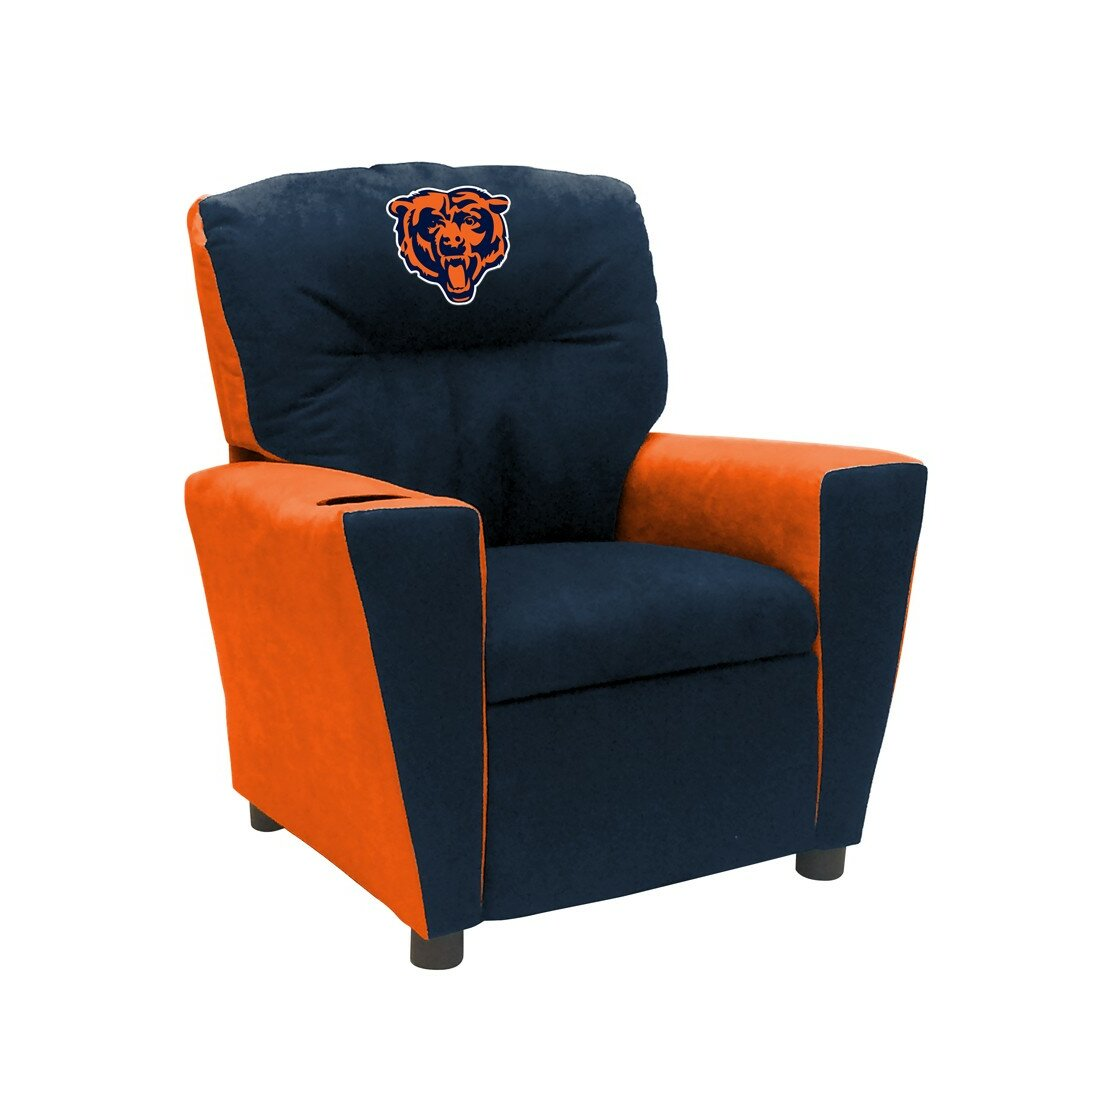 Imperial Nfl Recliner Amp Reviews Wayfair